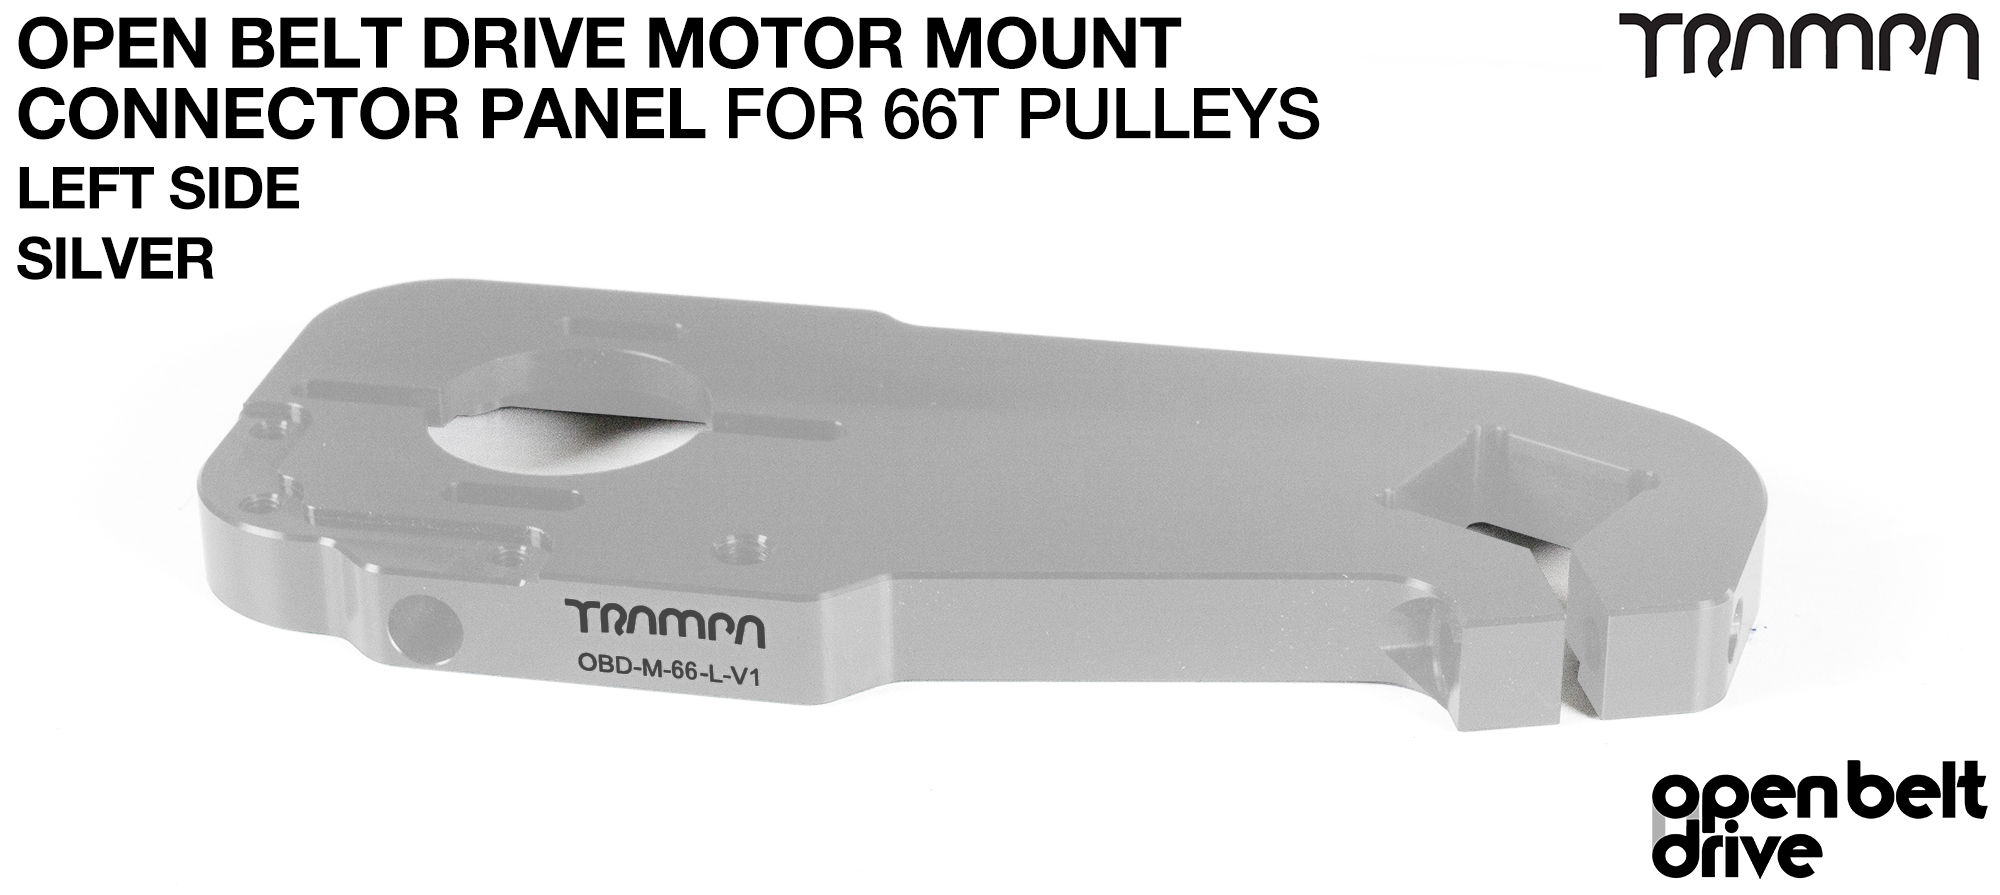 OBD Motor Mount Connector Panel for 66 tooth Pulleys - REGULAR - SILVER